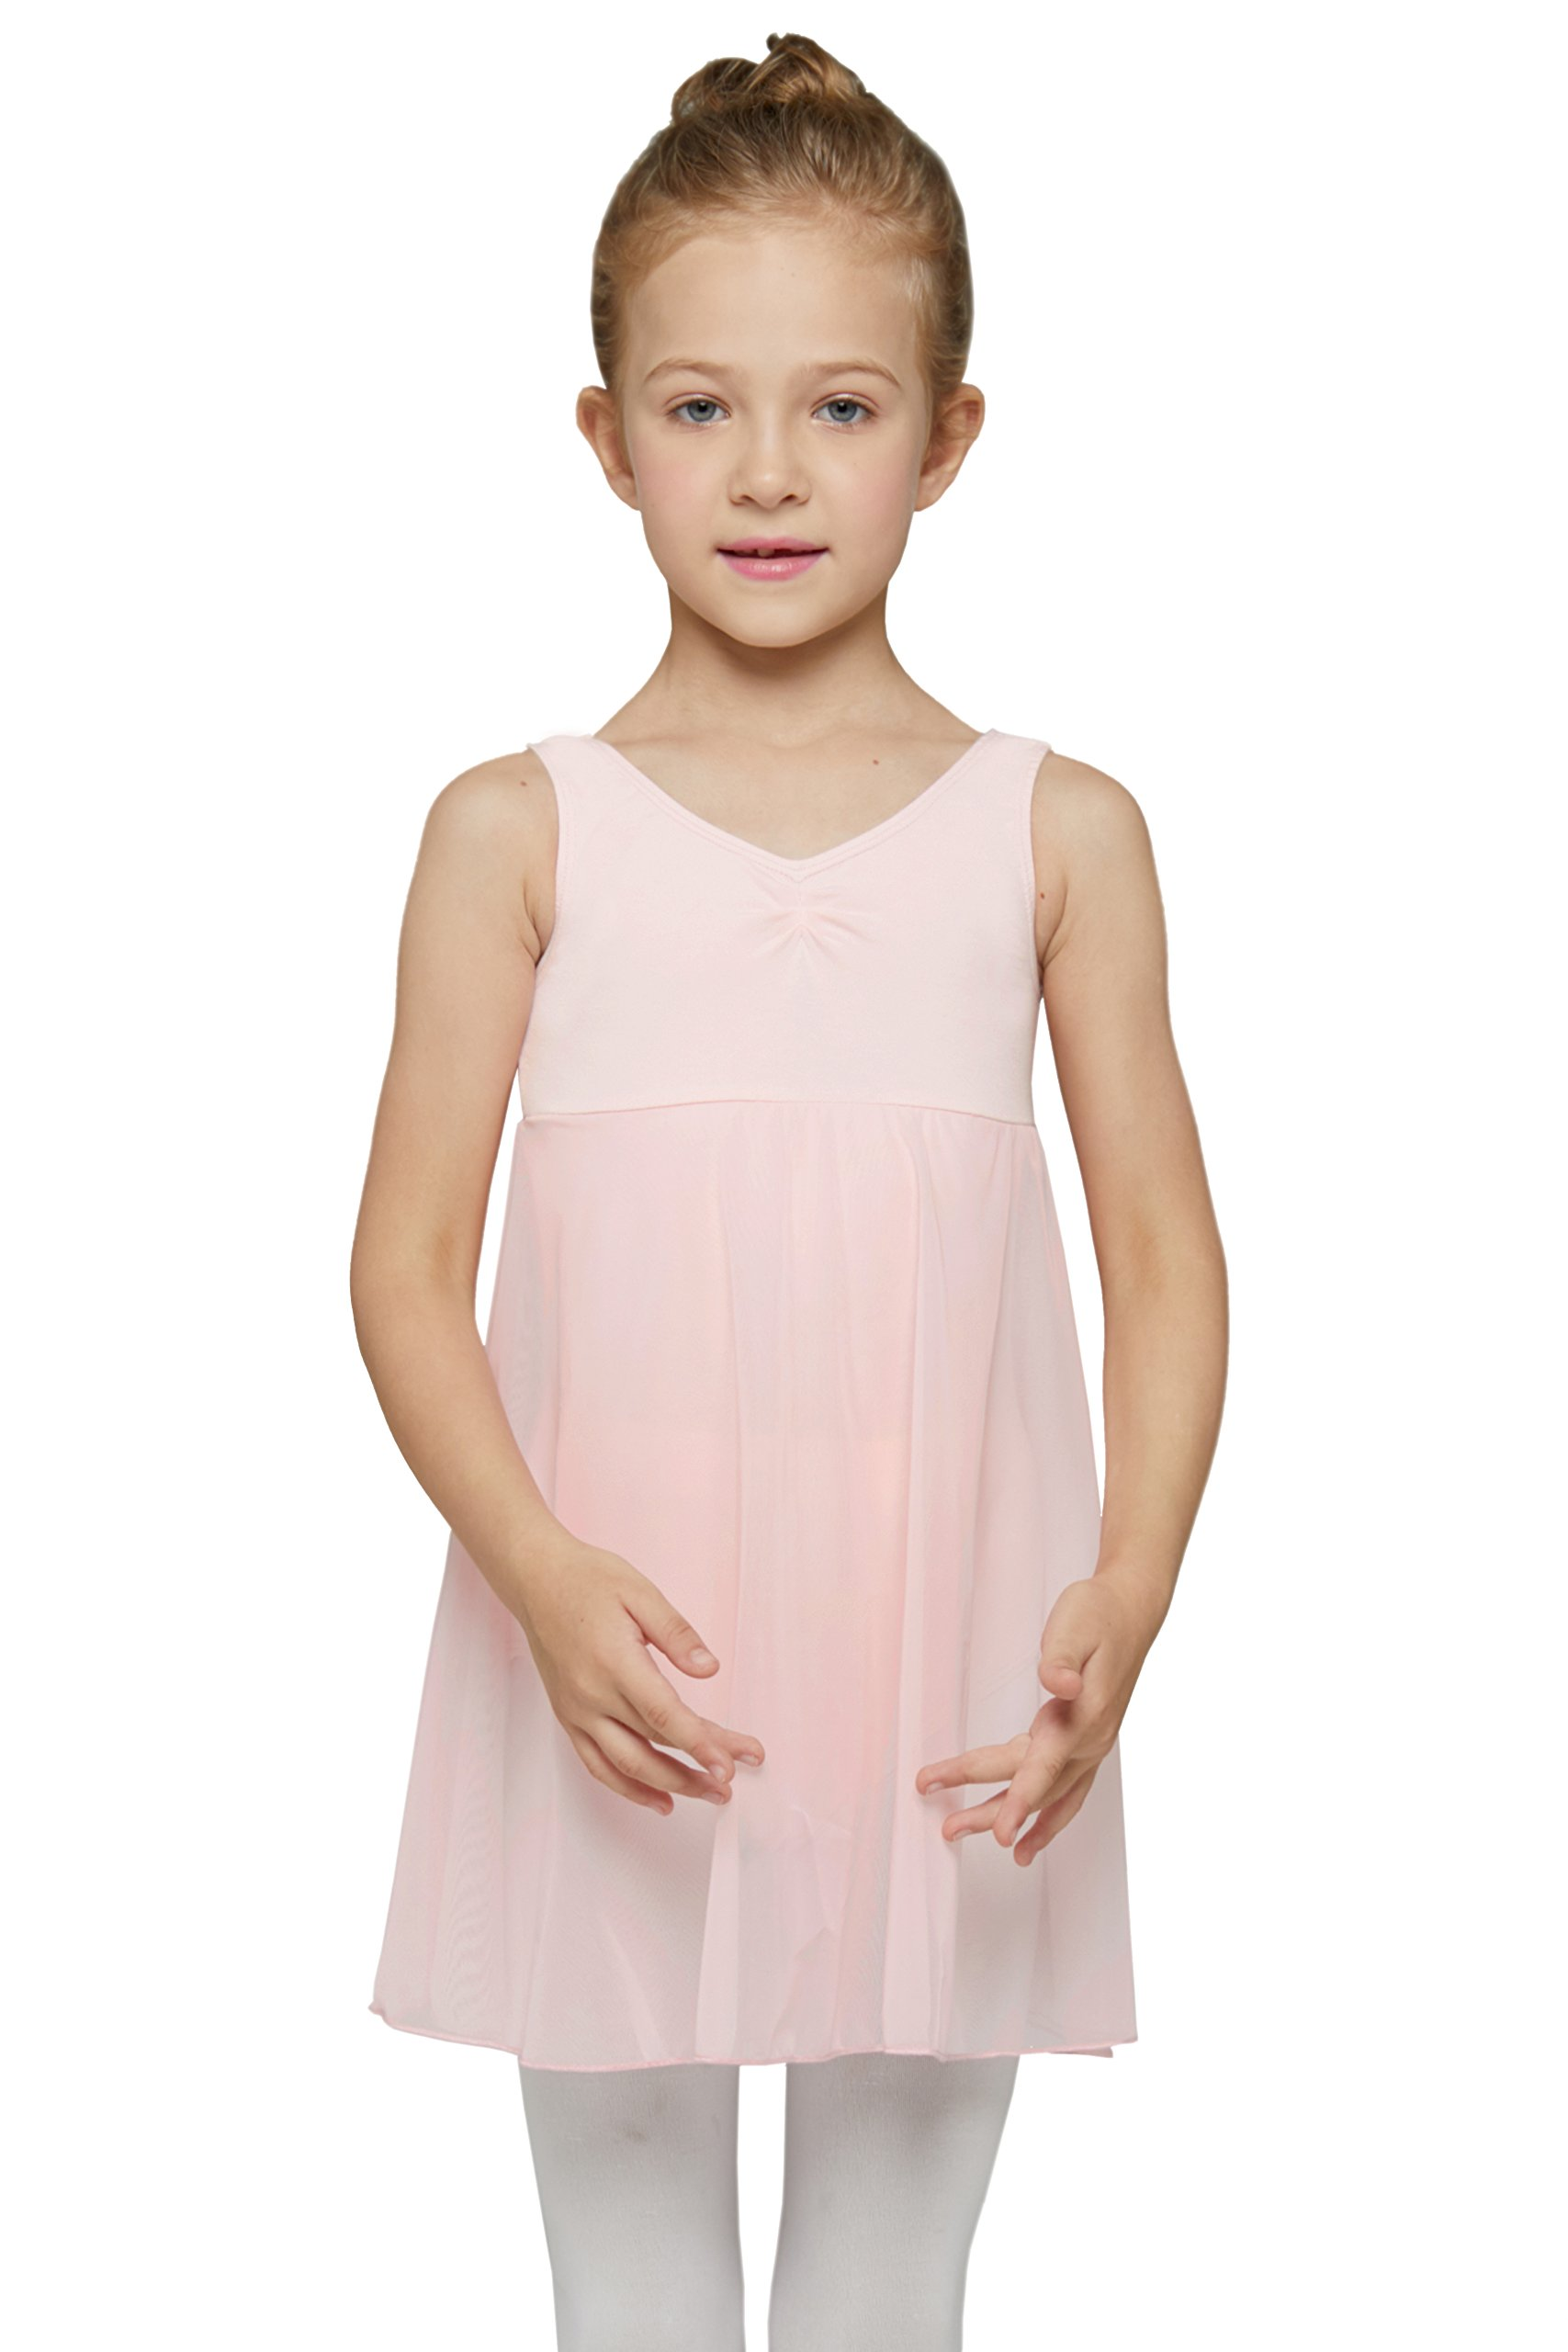 Skirted Sleeveless Leotard for Girls by Mdnmd (Tag 150) Age 10-12, Ballet Pink)